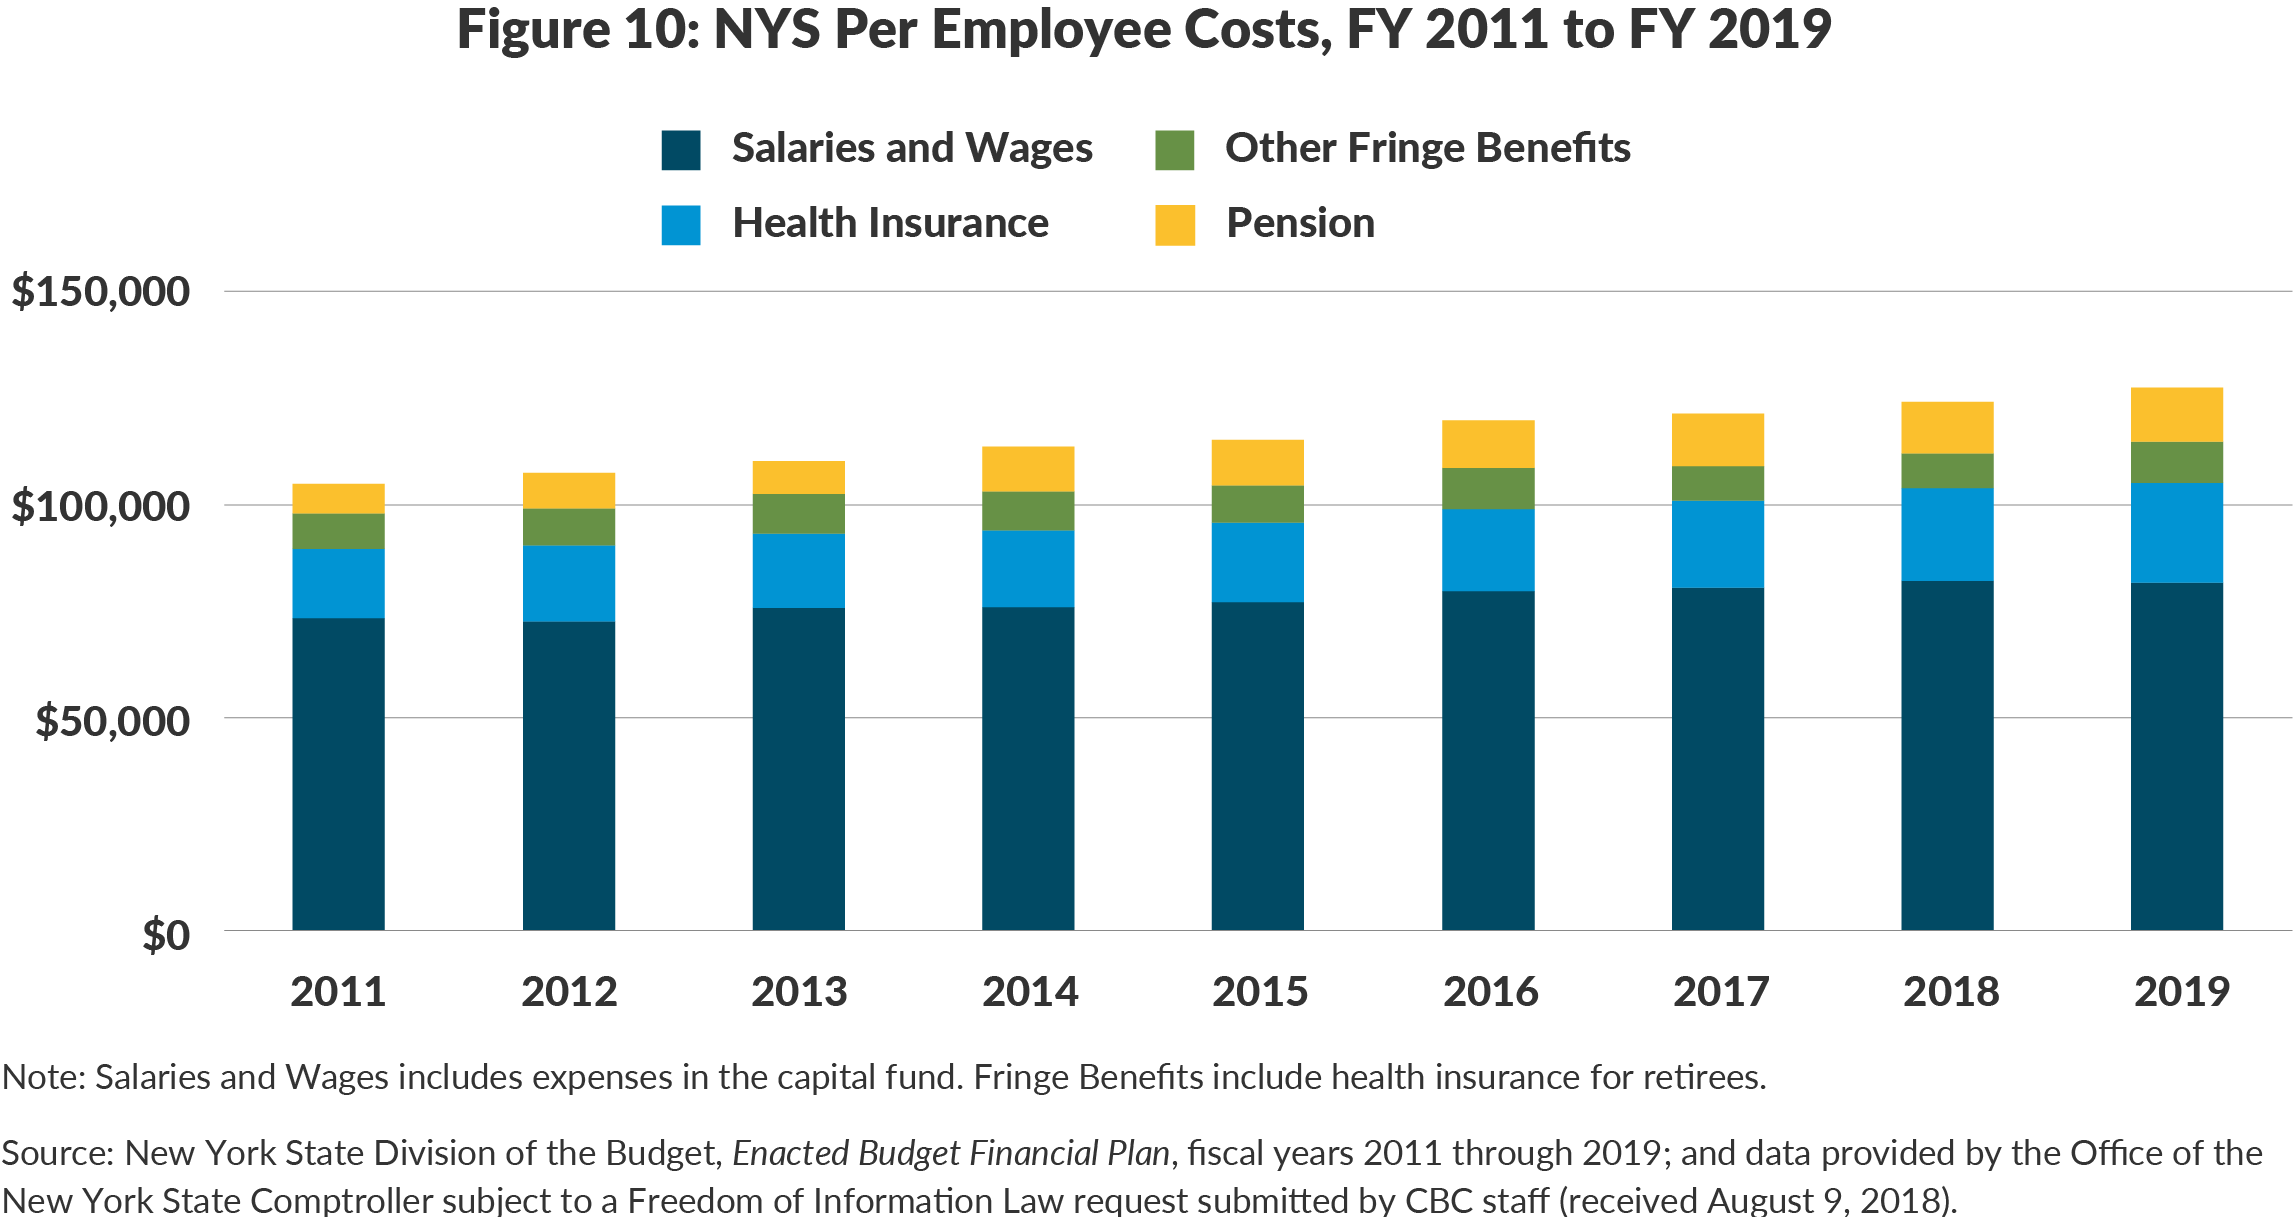 Figure 10: NYS Per Employee Costs, FY 2011 to FY 2019